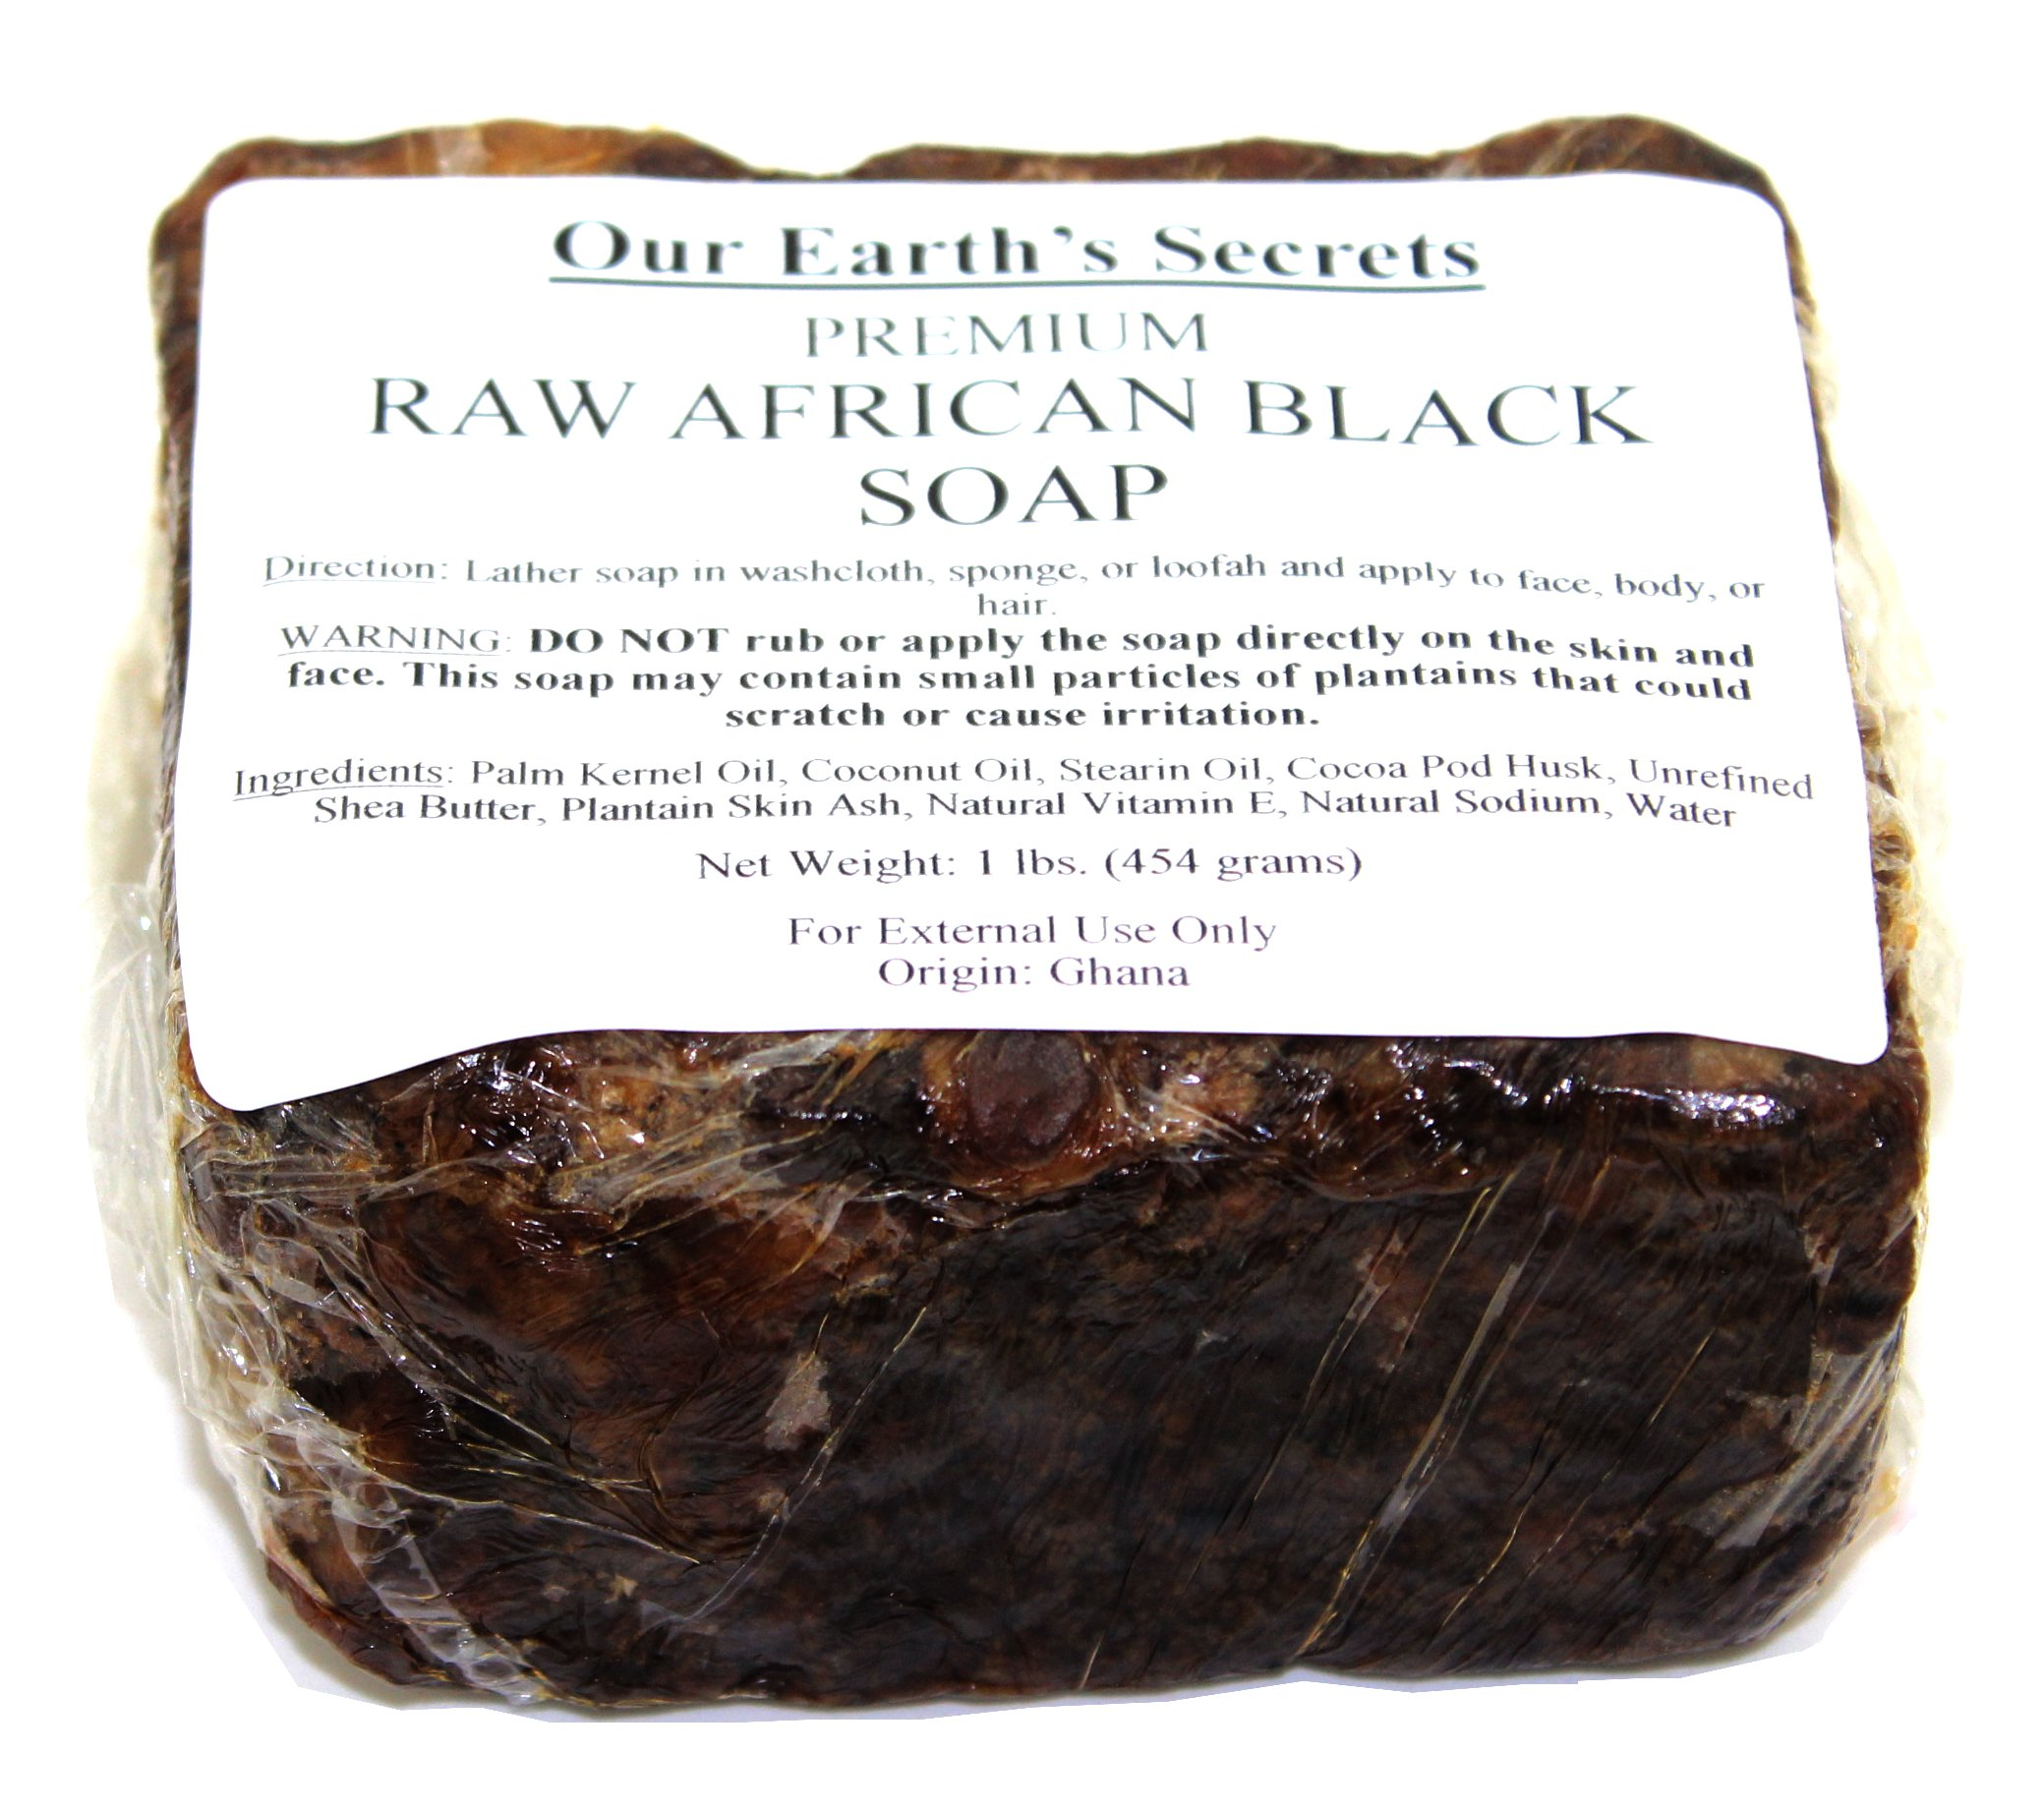 Our Earth's Secrets Raw African Black Soap, 1 lb. by Our Earth's Secrets (Image #4)